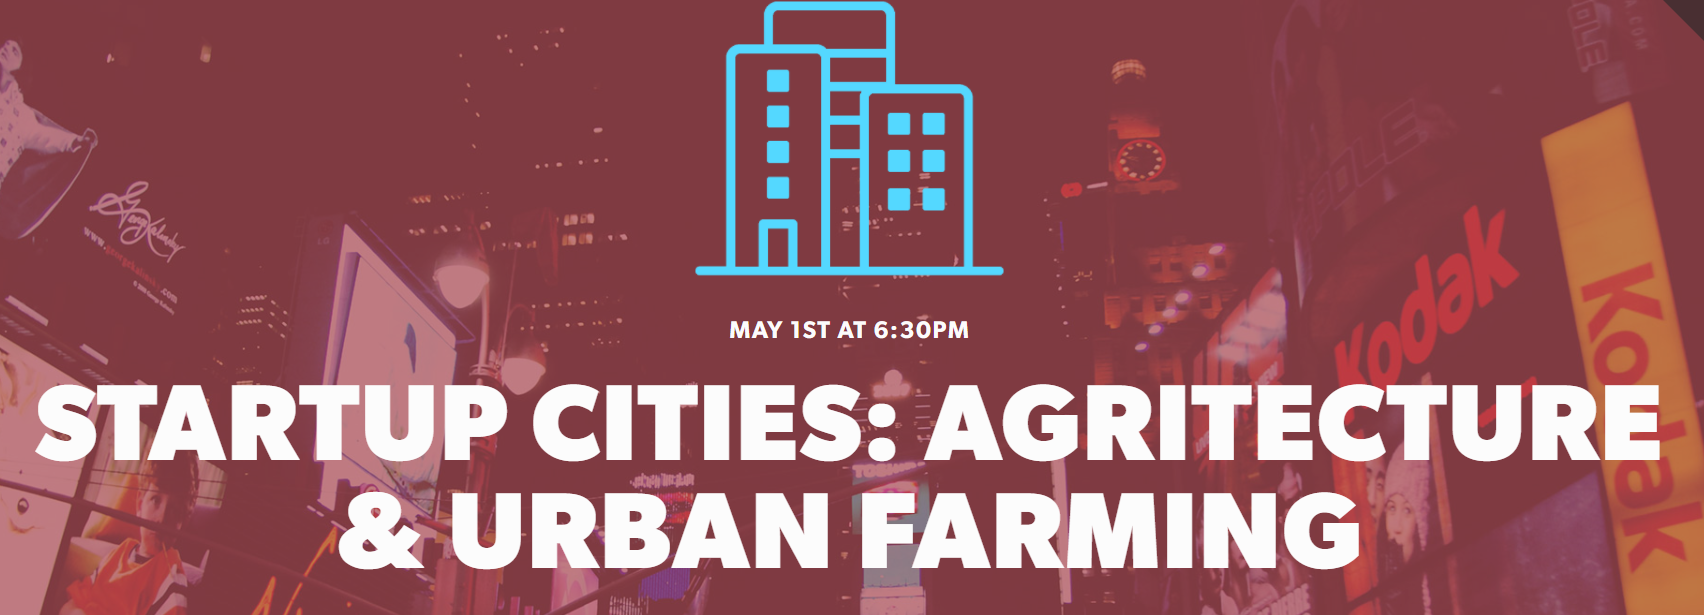 Startup Cities Agritecture.png